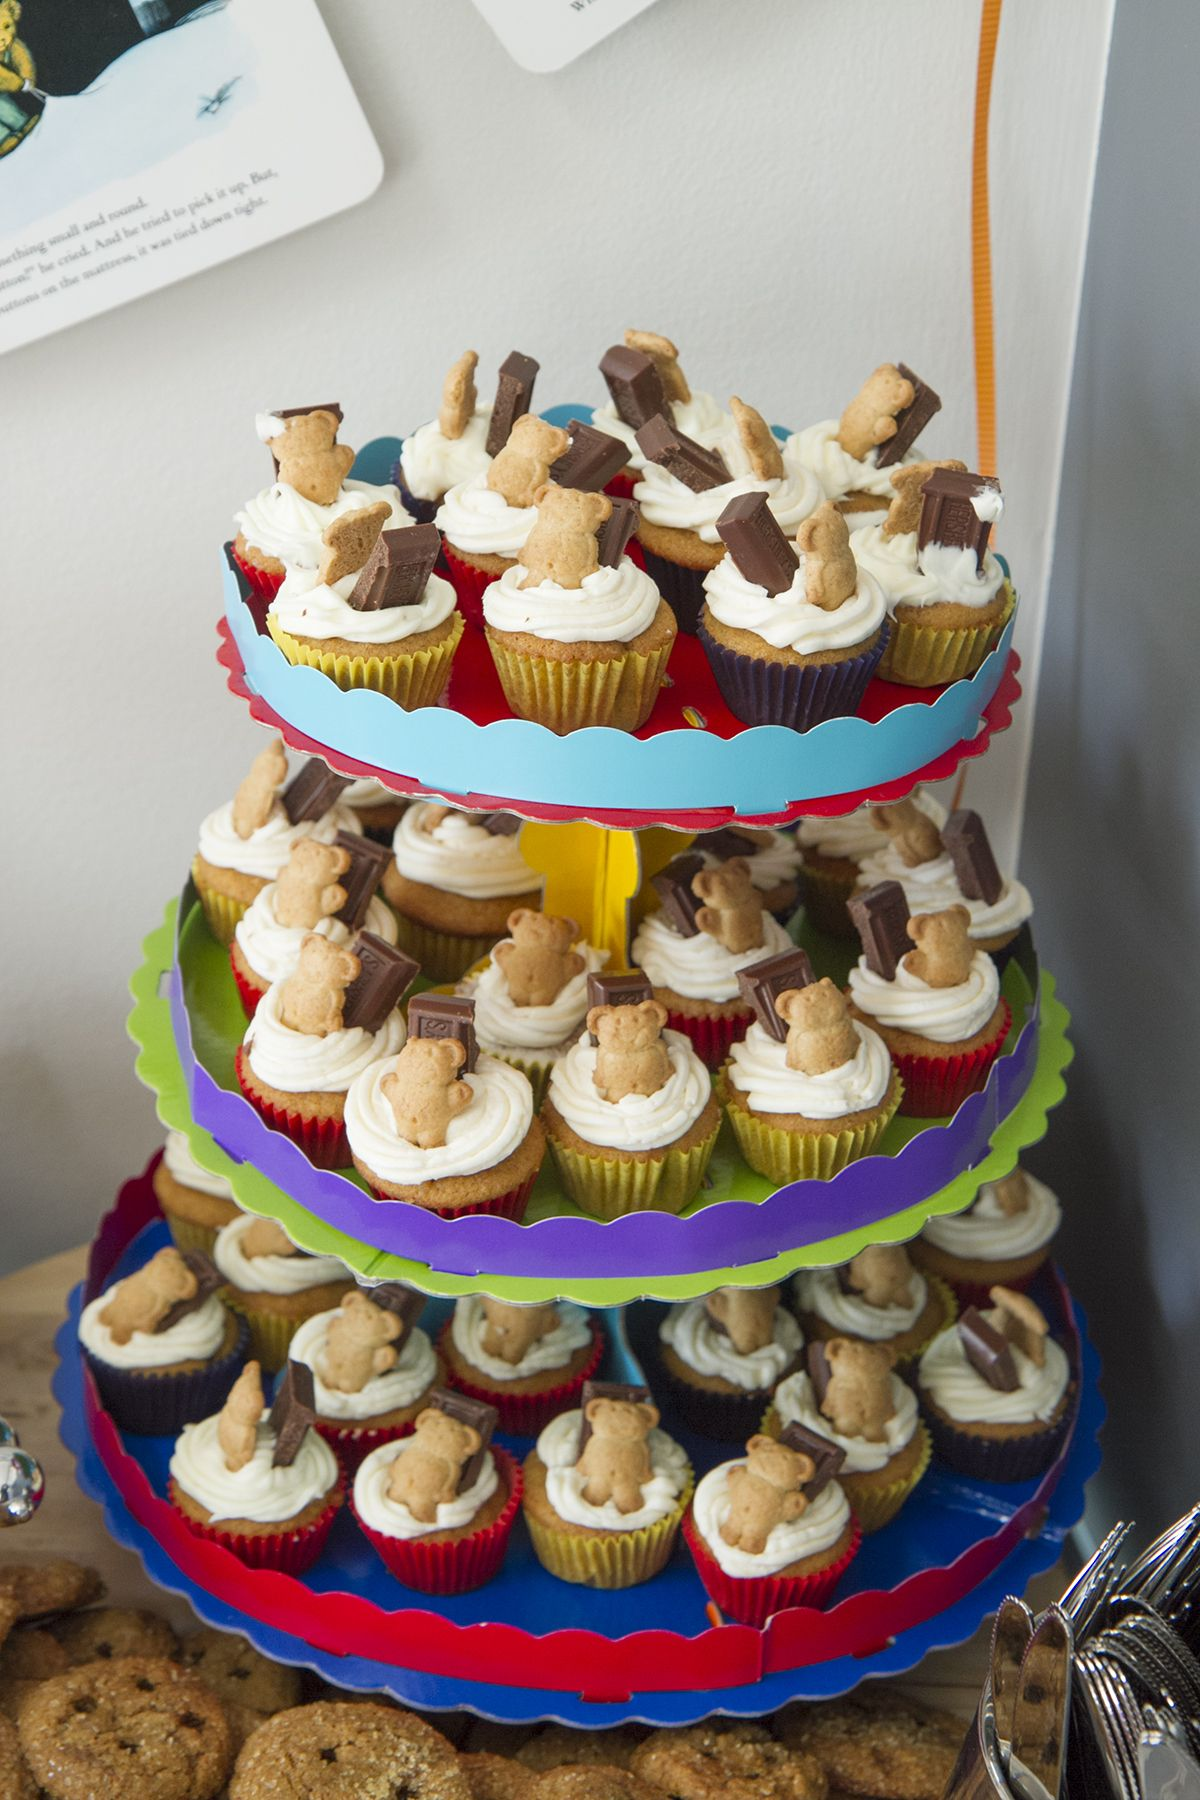 Mini Smores Cupcakes I Made Topped With Teddy Grahams To